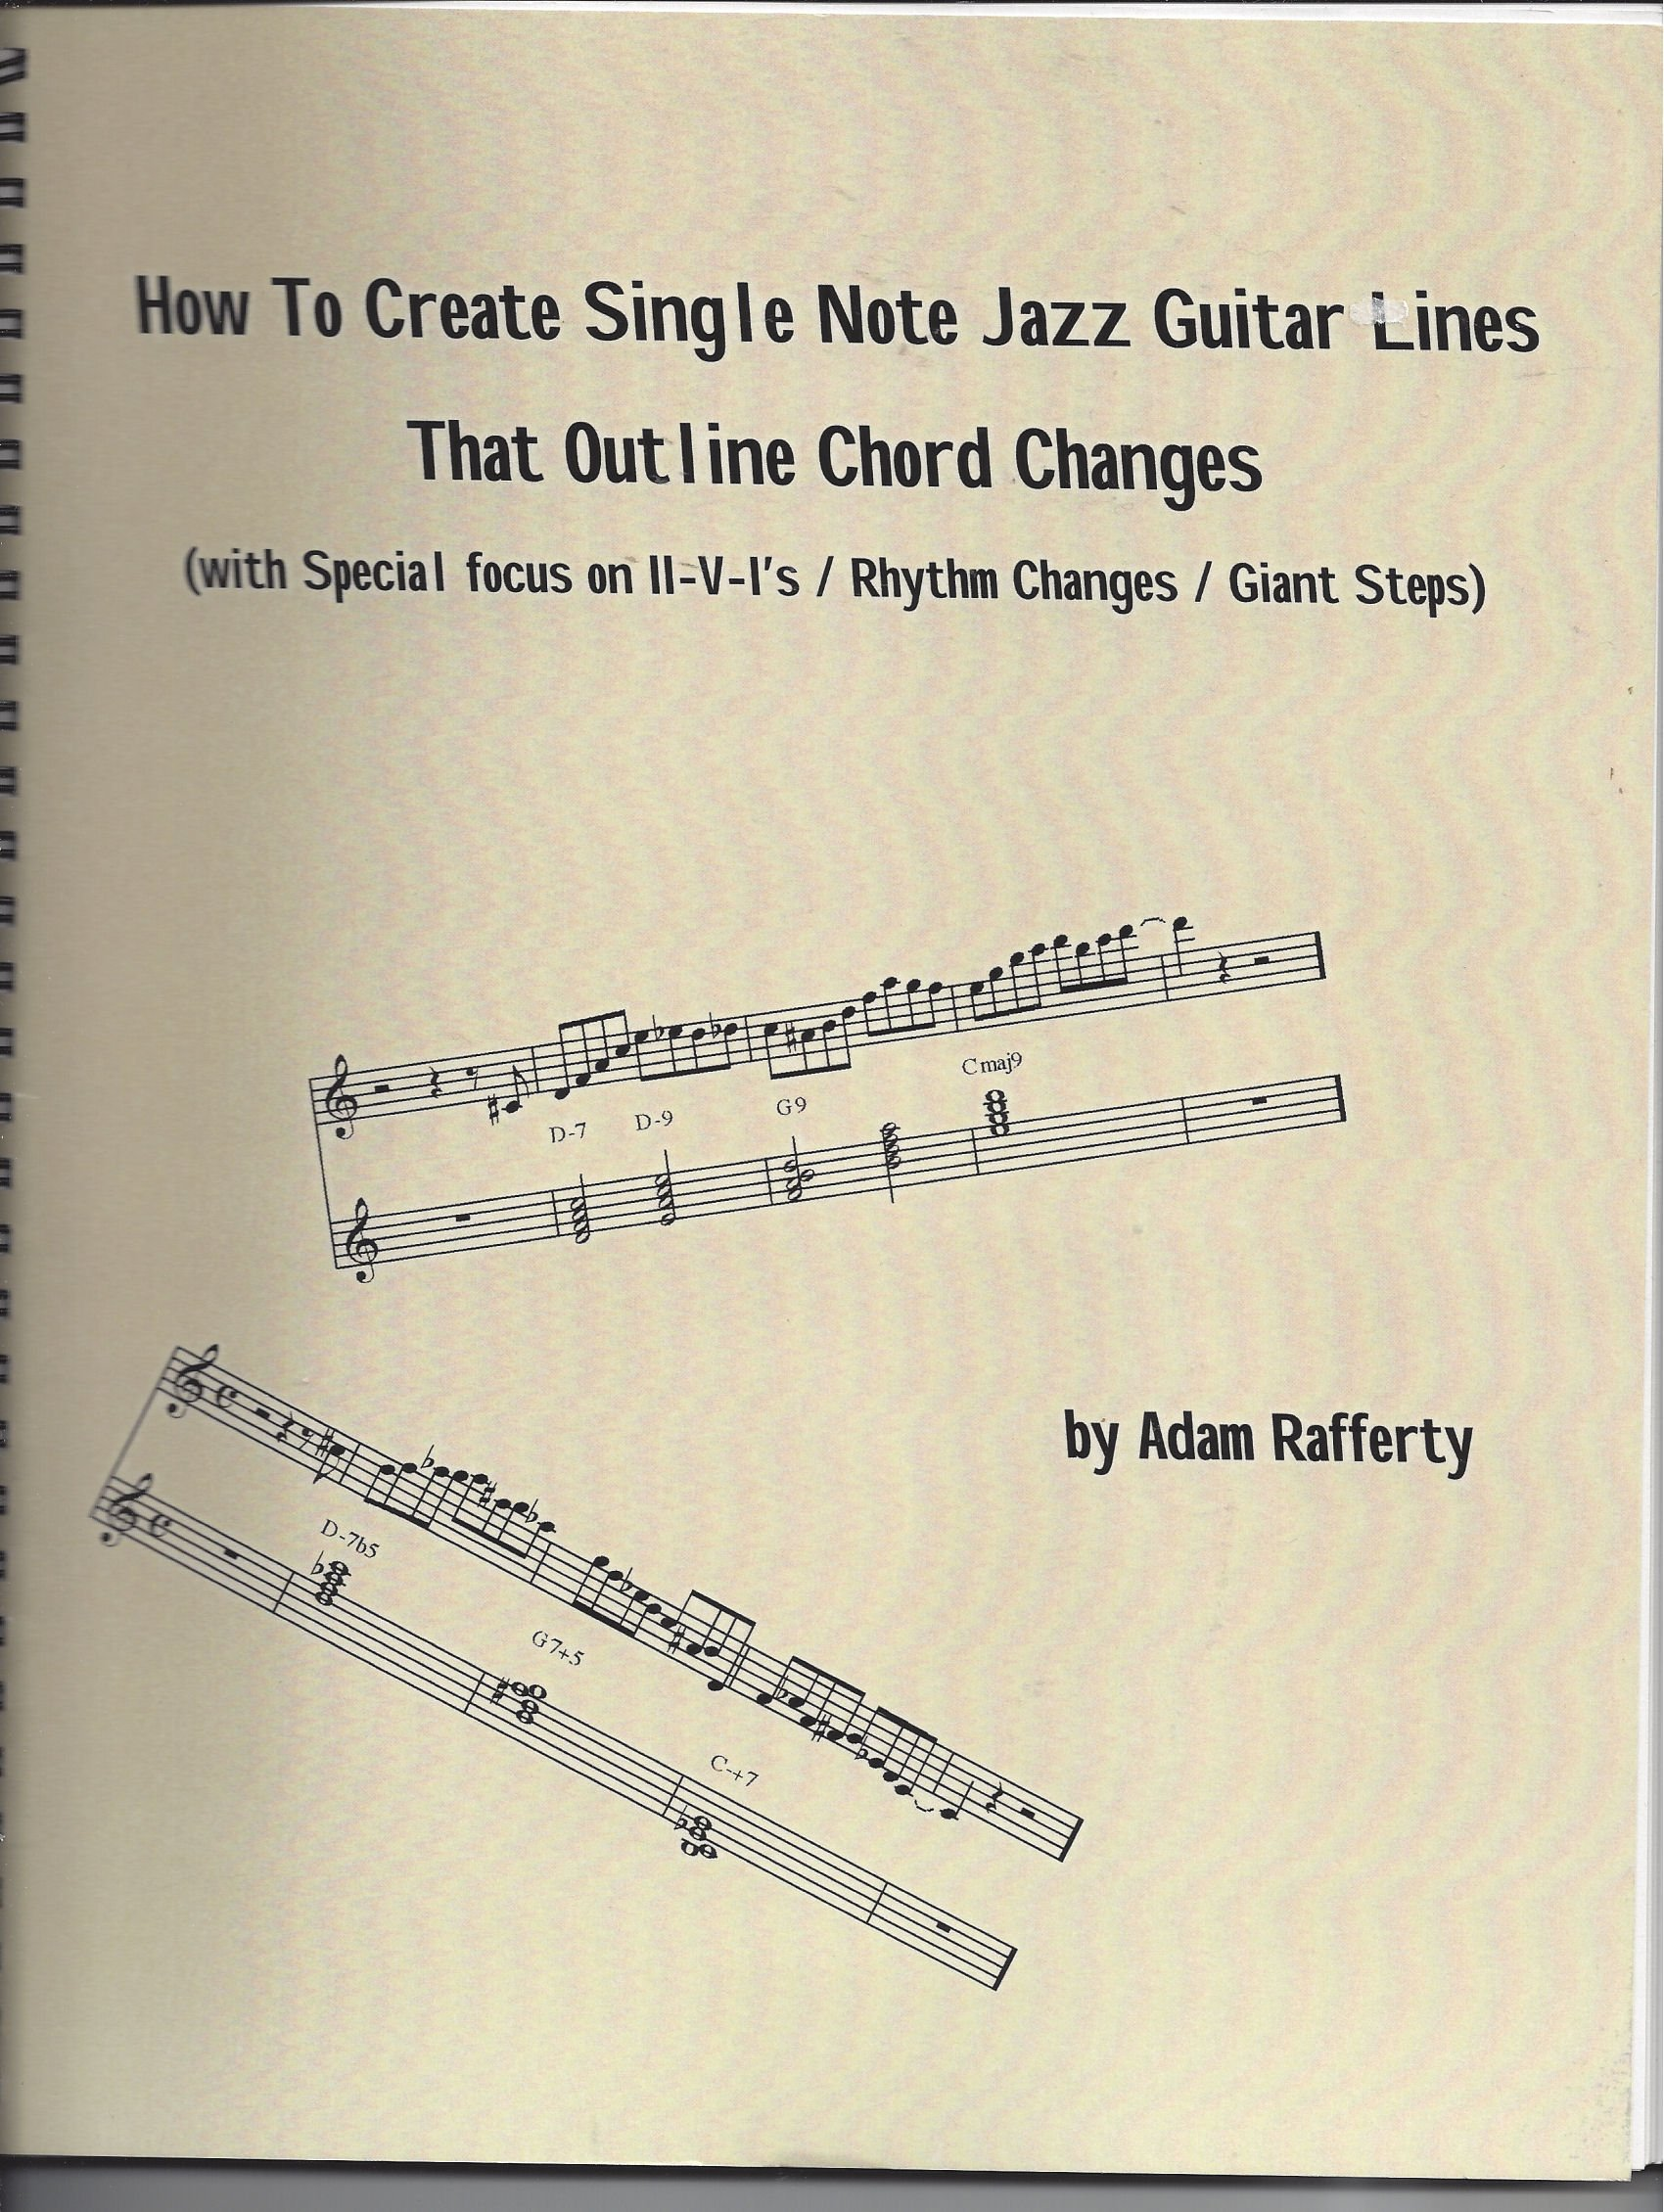 How To Create Single Note Jazz Guitar Lines That Outline Chord